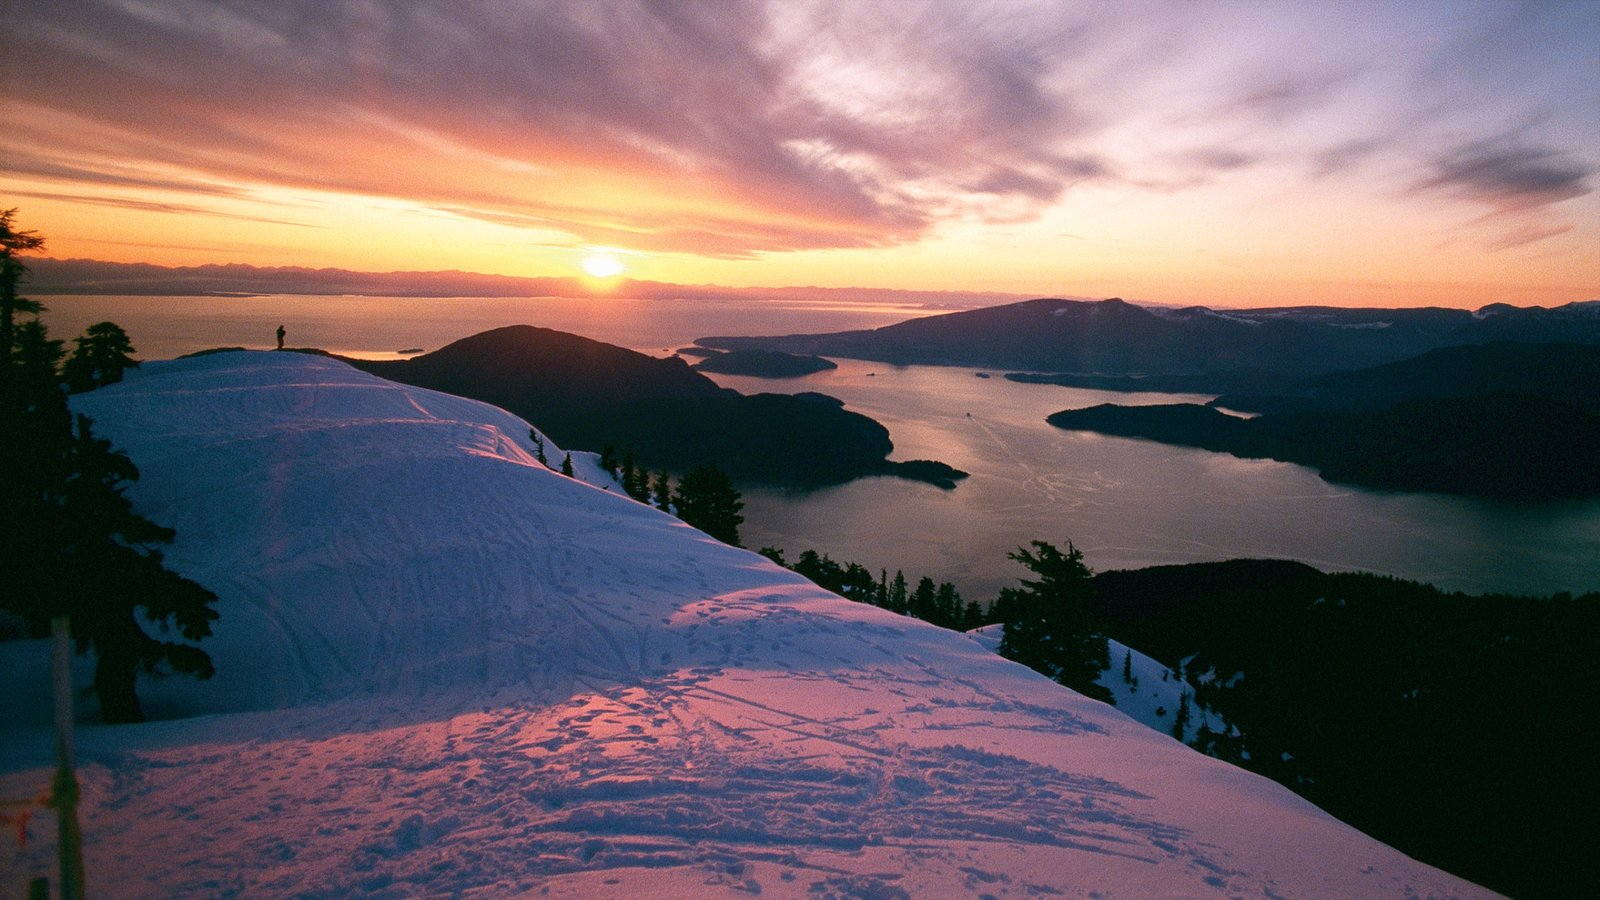 Cypress Mountain showing snow, a sunset and mountains